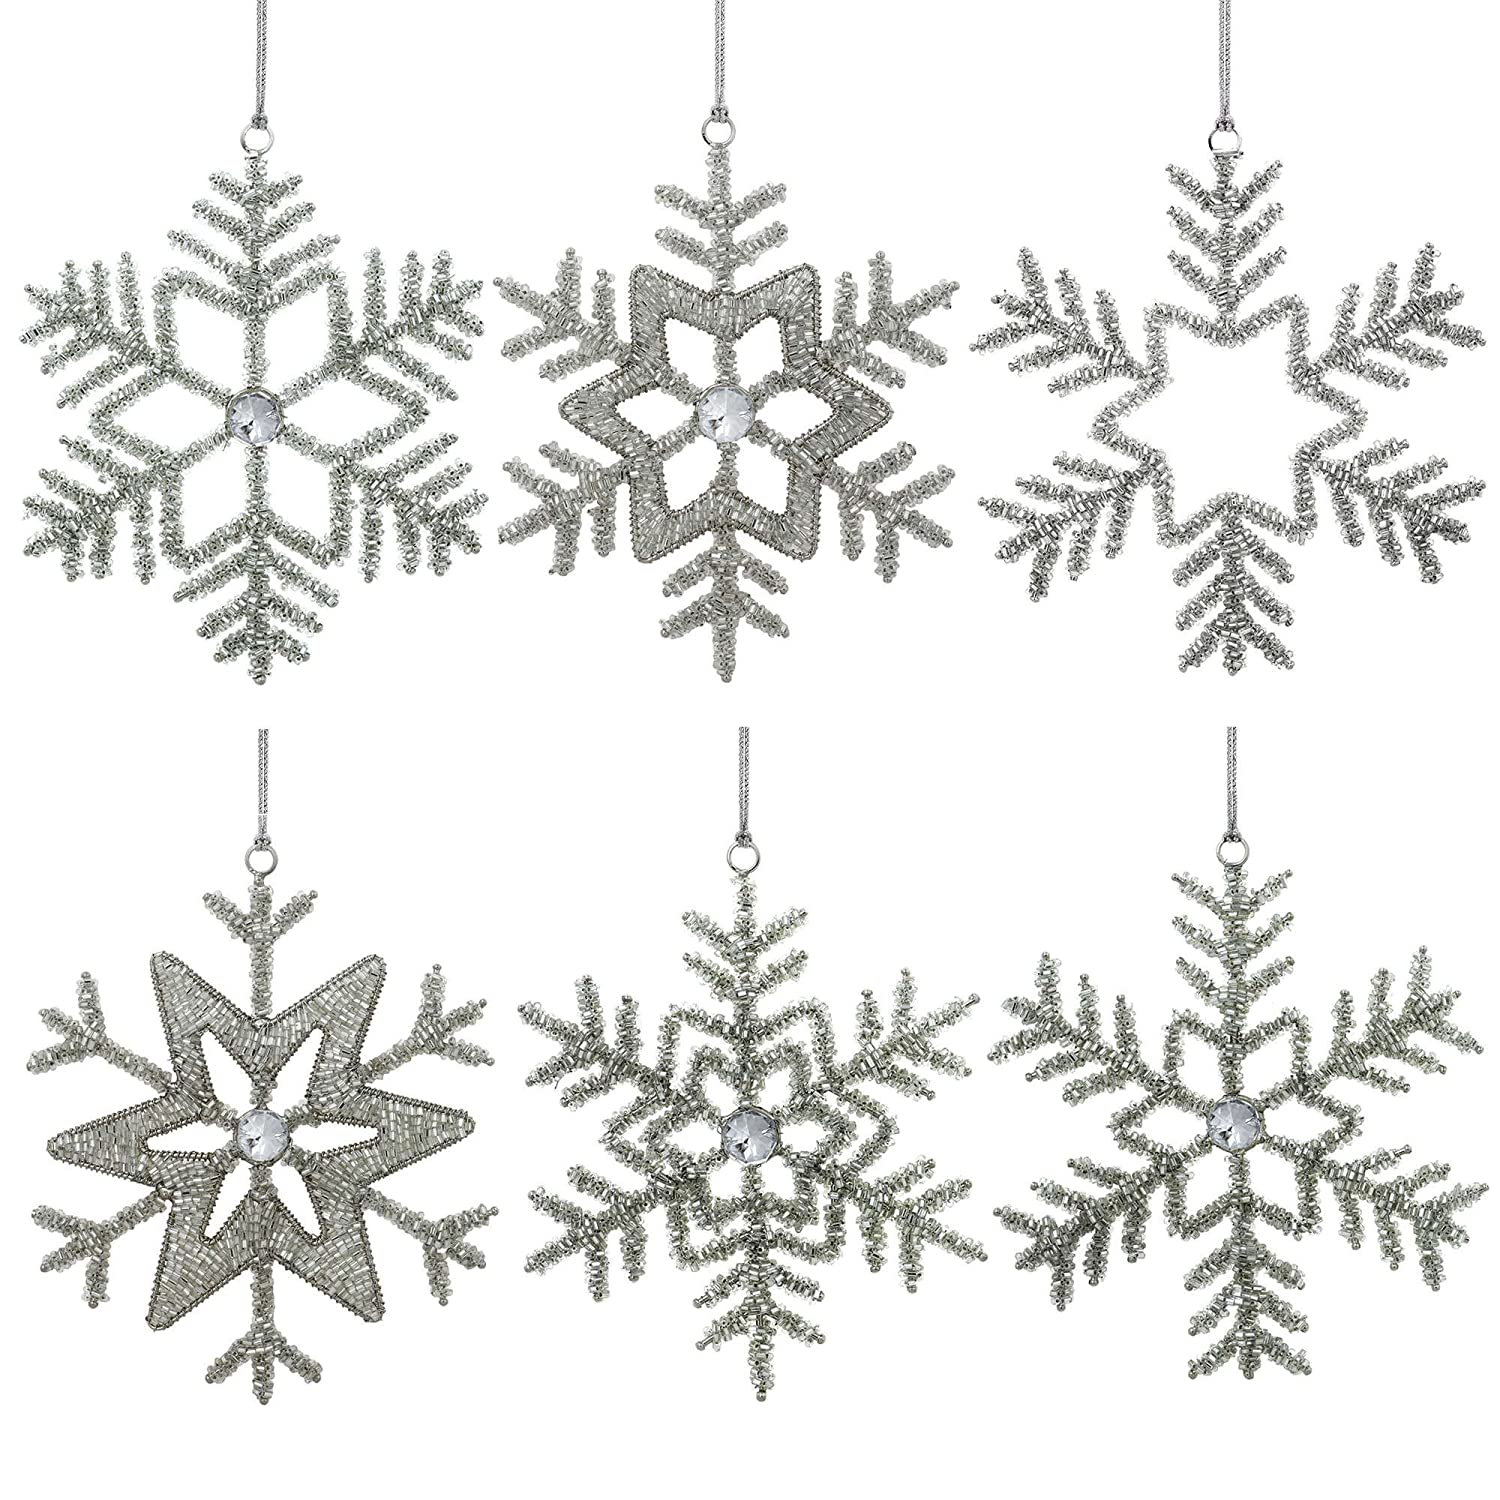 Set of 6 Handmade Snowflake Iron and Glass Pendant Christmas Ornaments 6 Inches